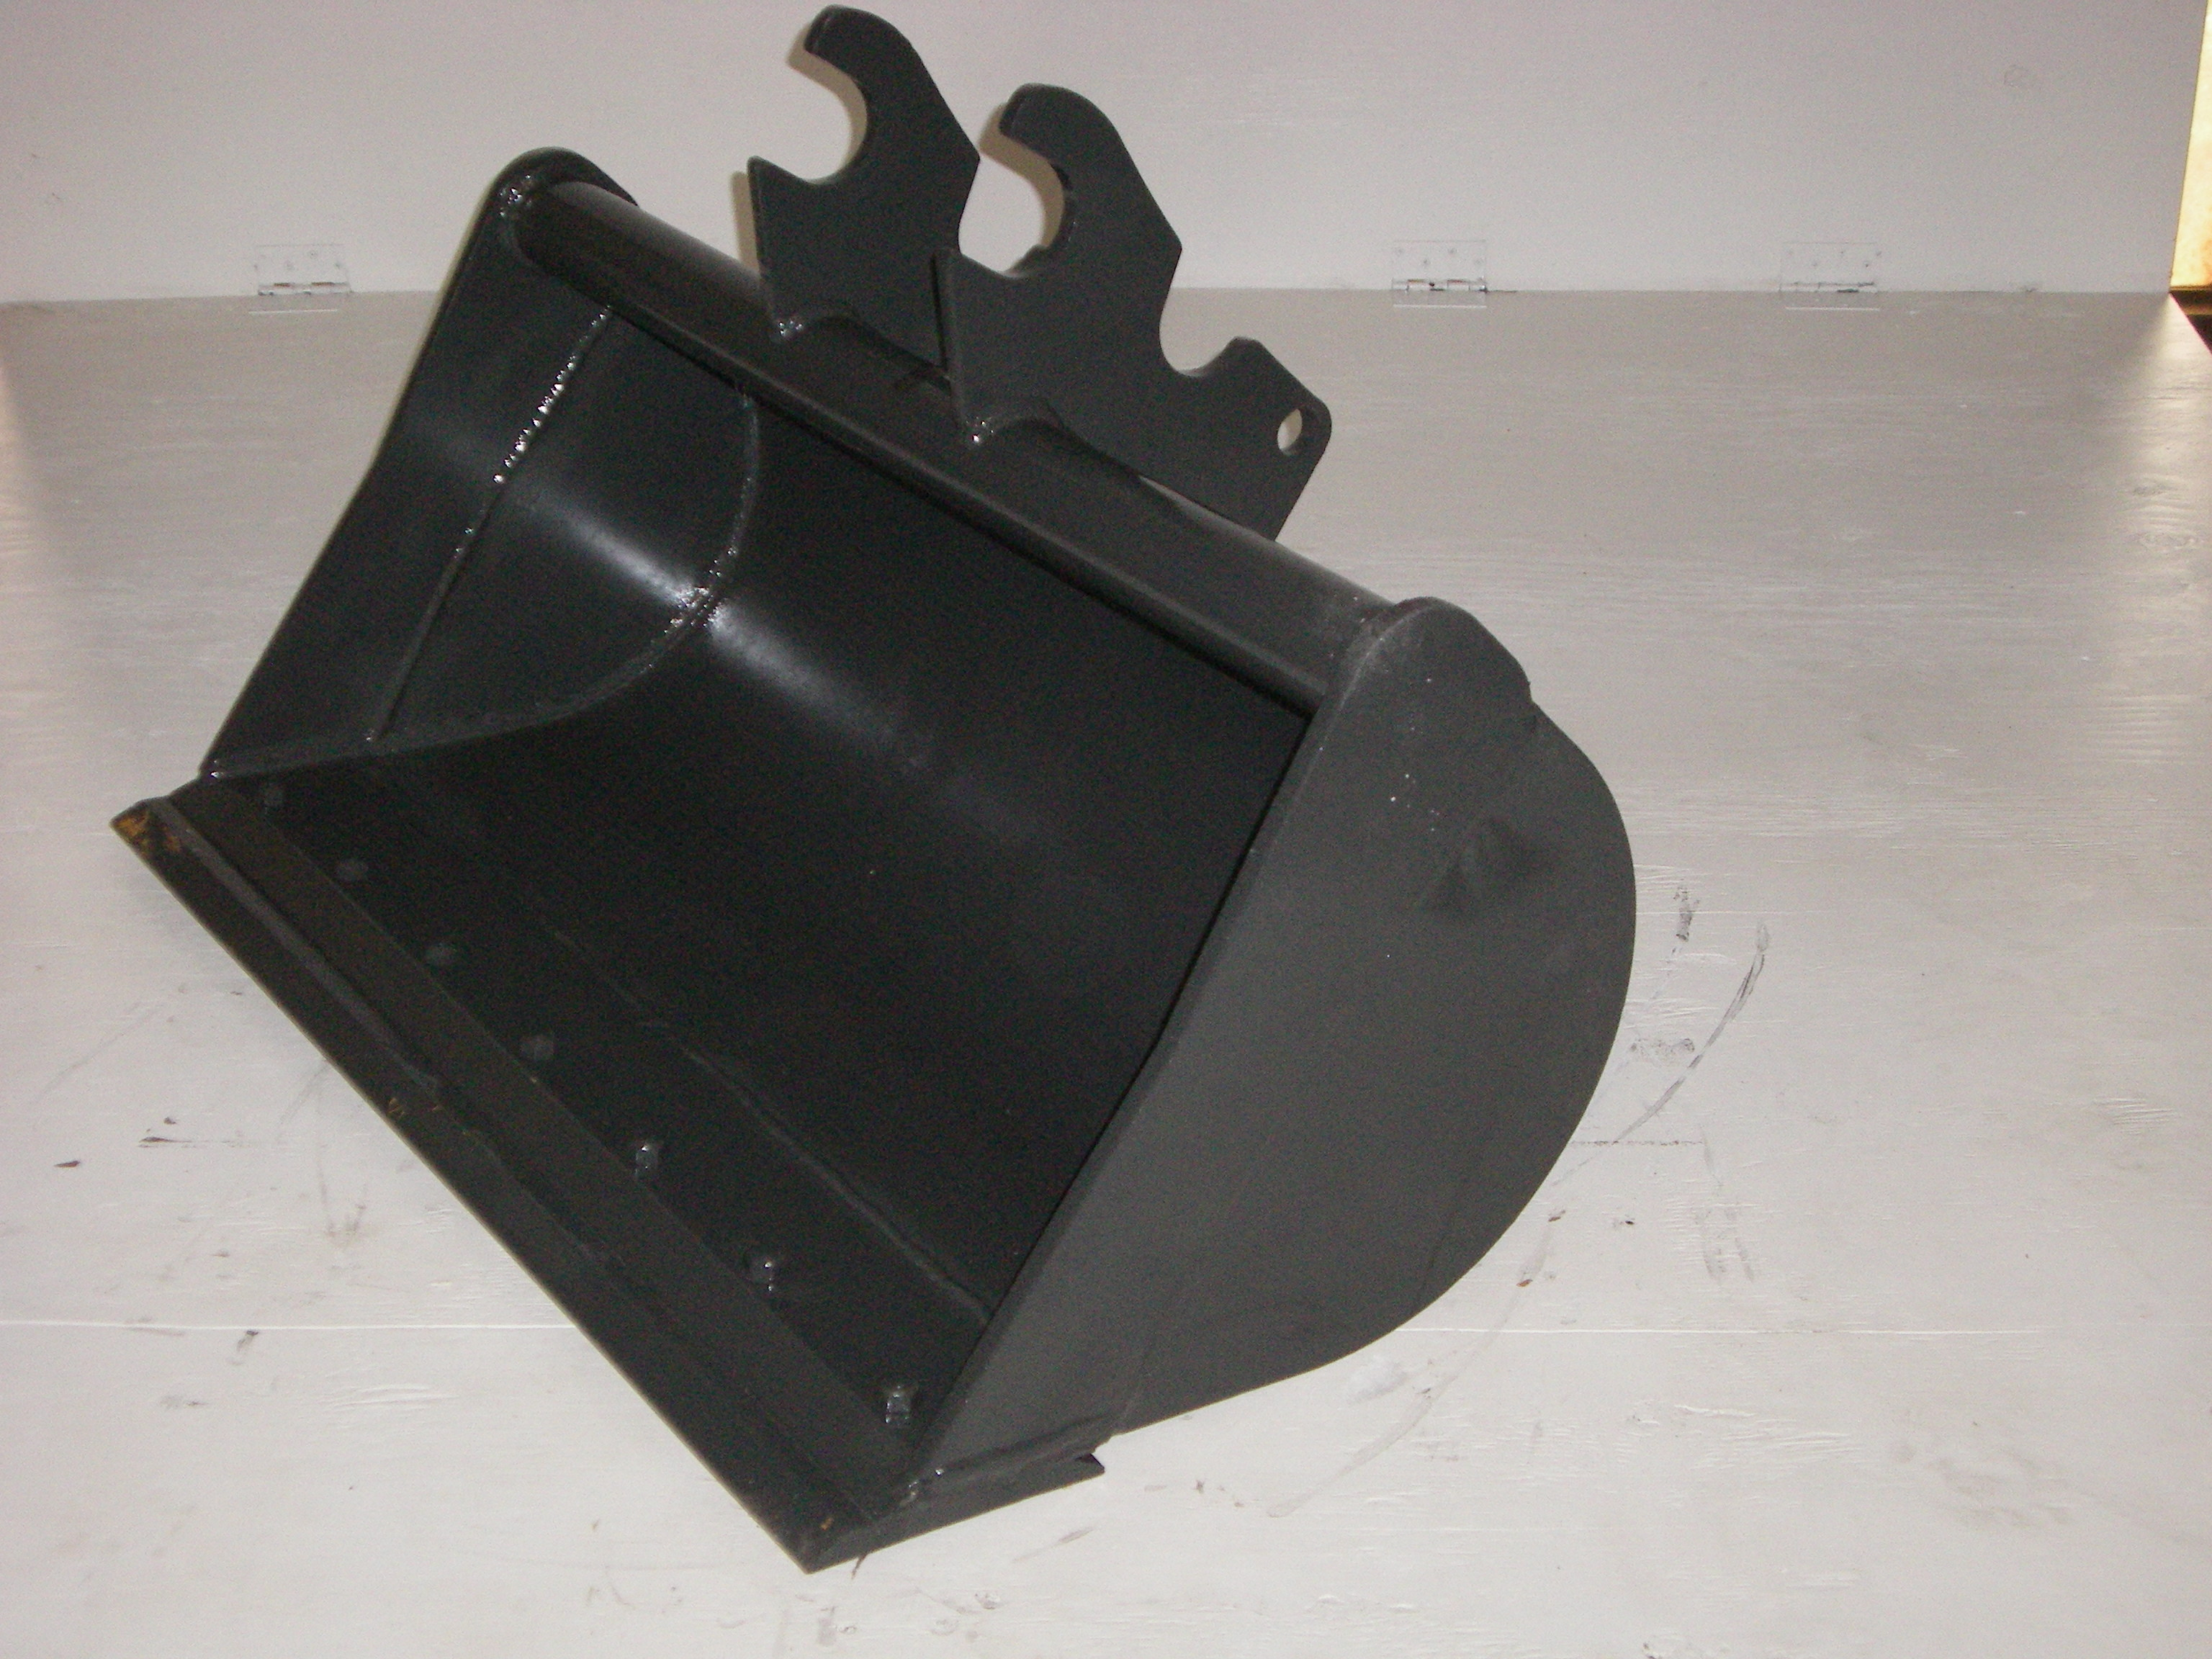 Usaa Contact Us >> Kubota U35 Quick Attach 36 Inch Excavator Bucket W/bolt On ...